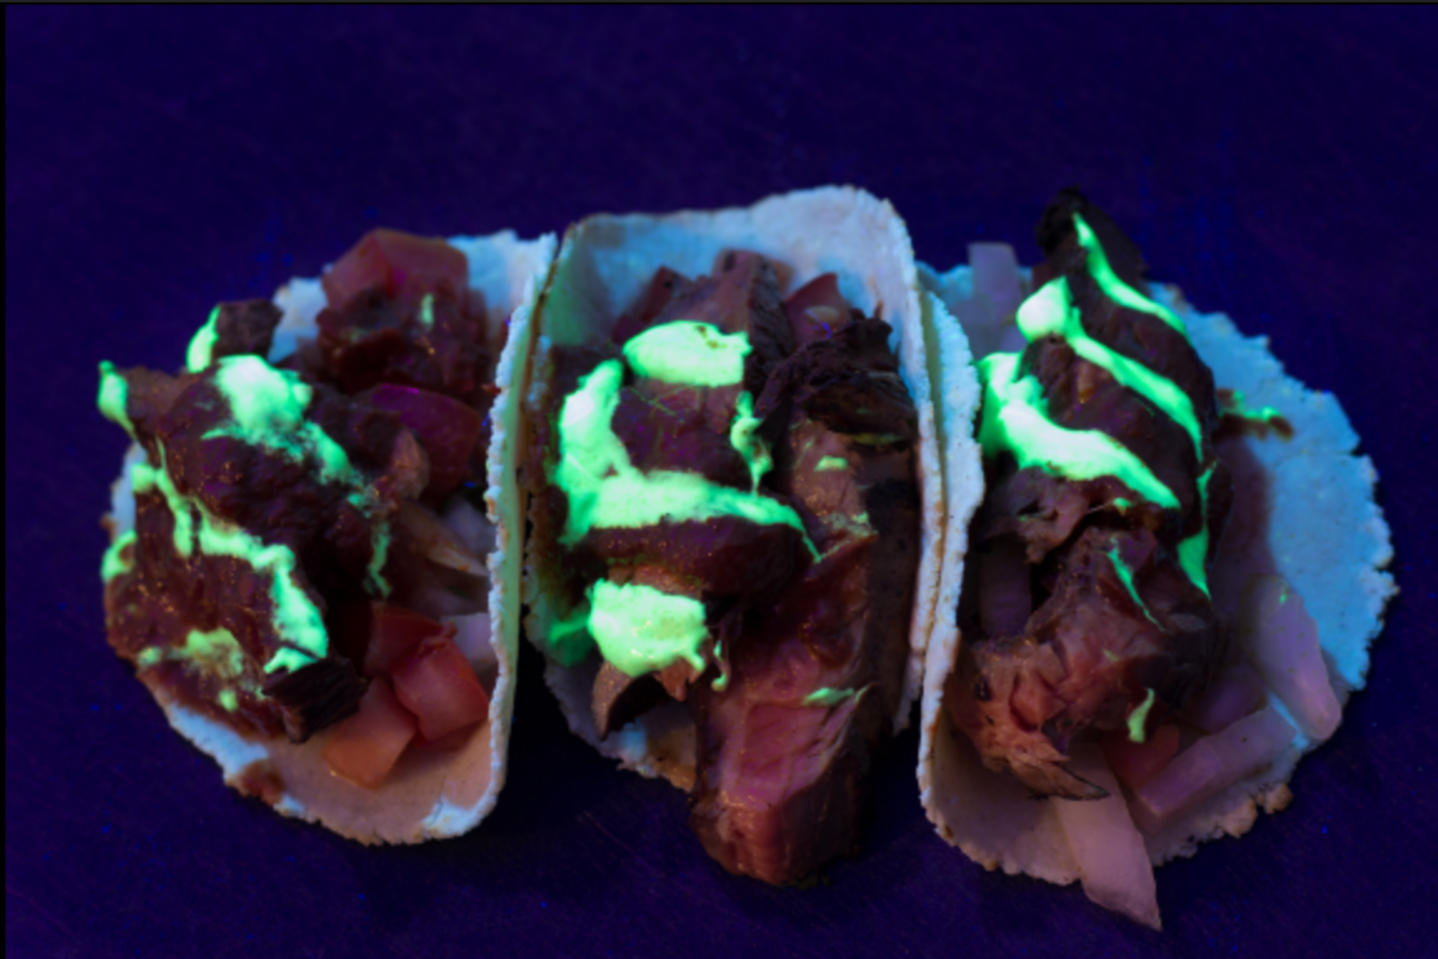 Where to find glow-in-the-dark tacos in London this month